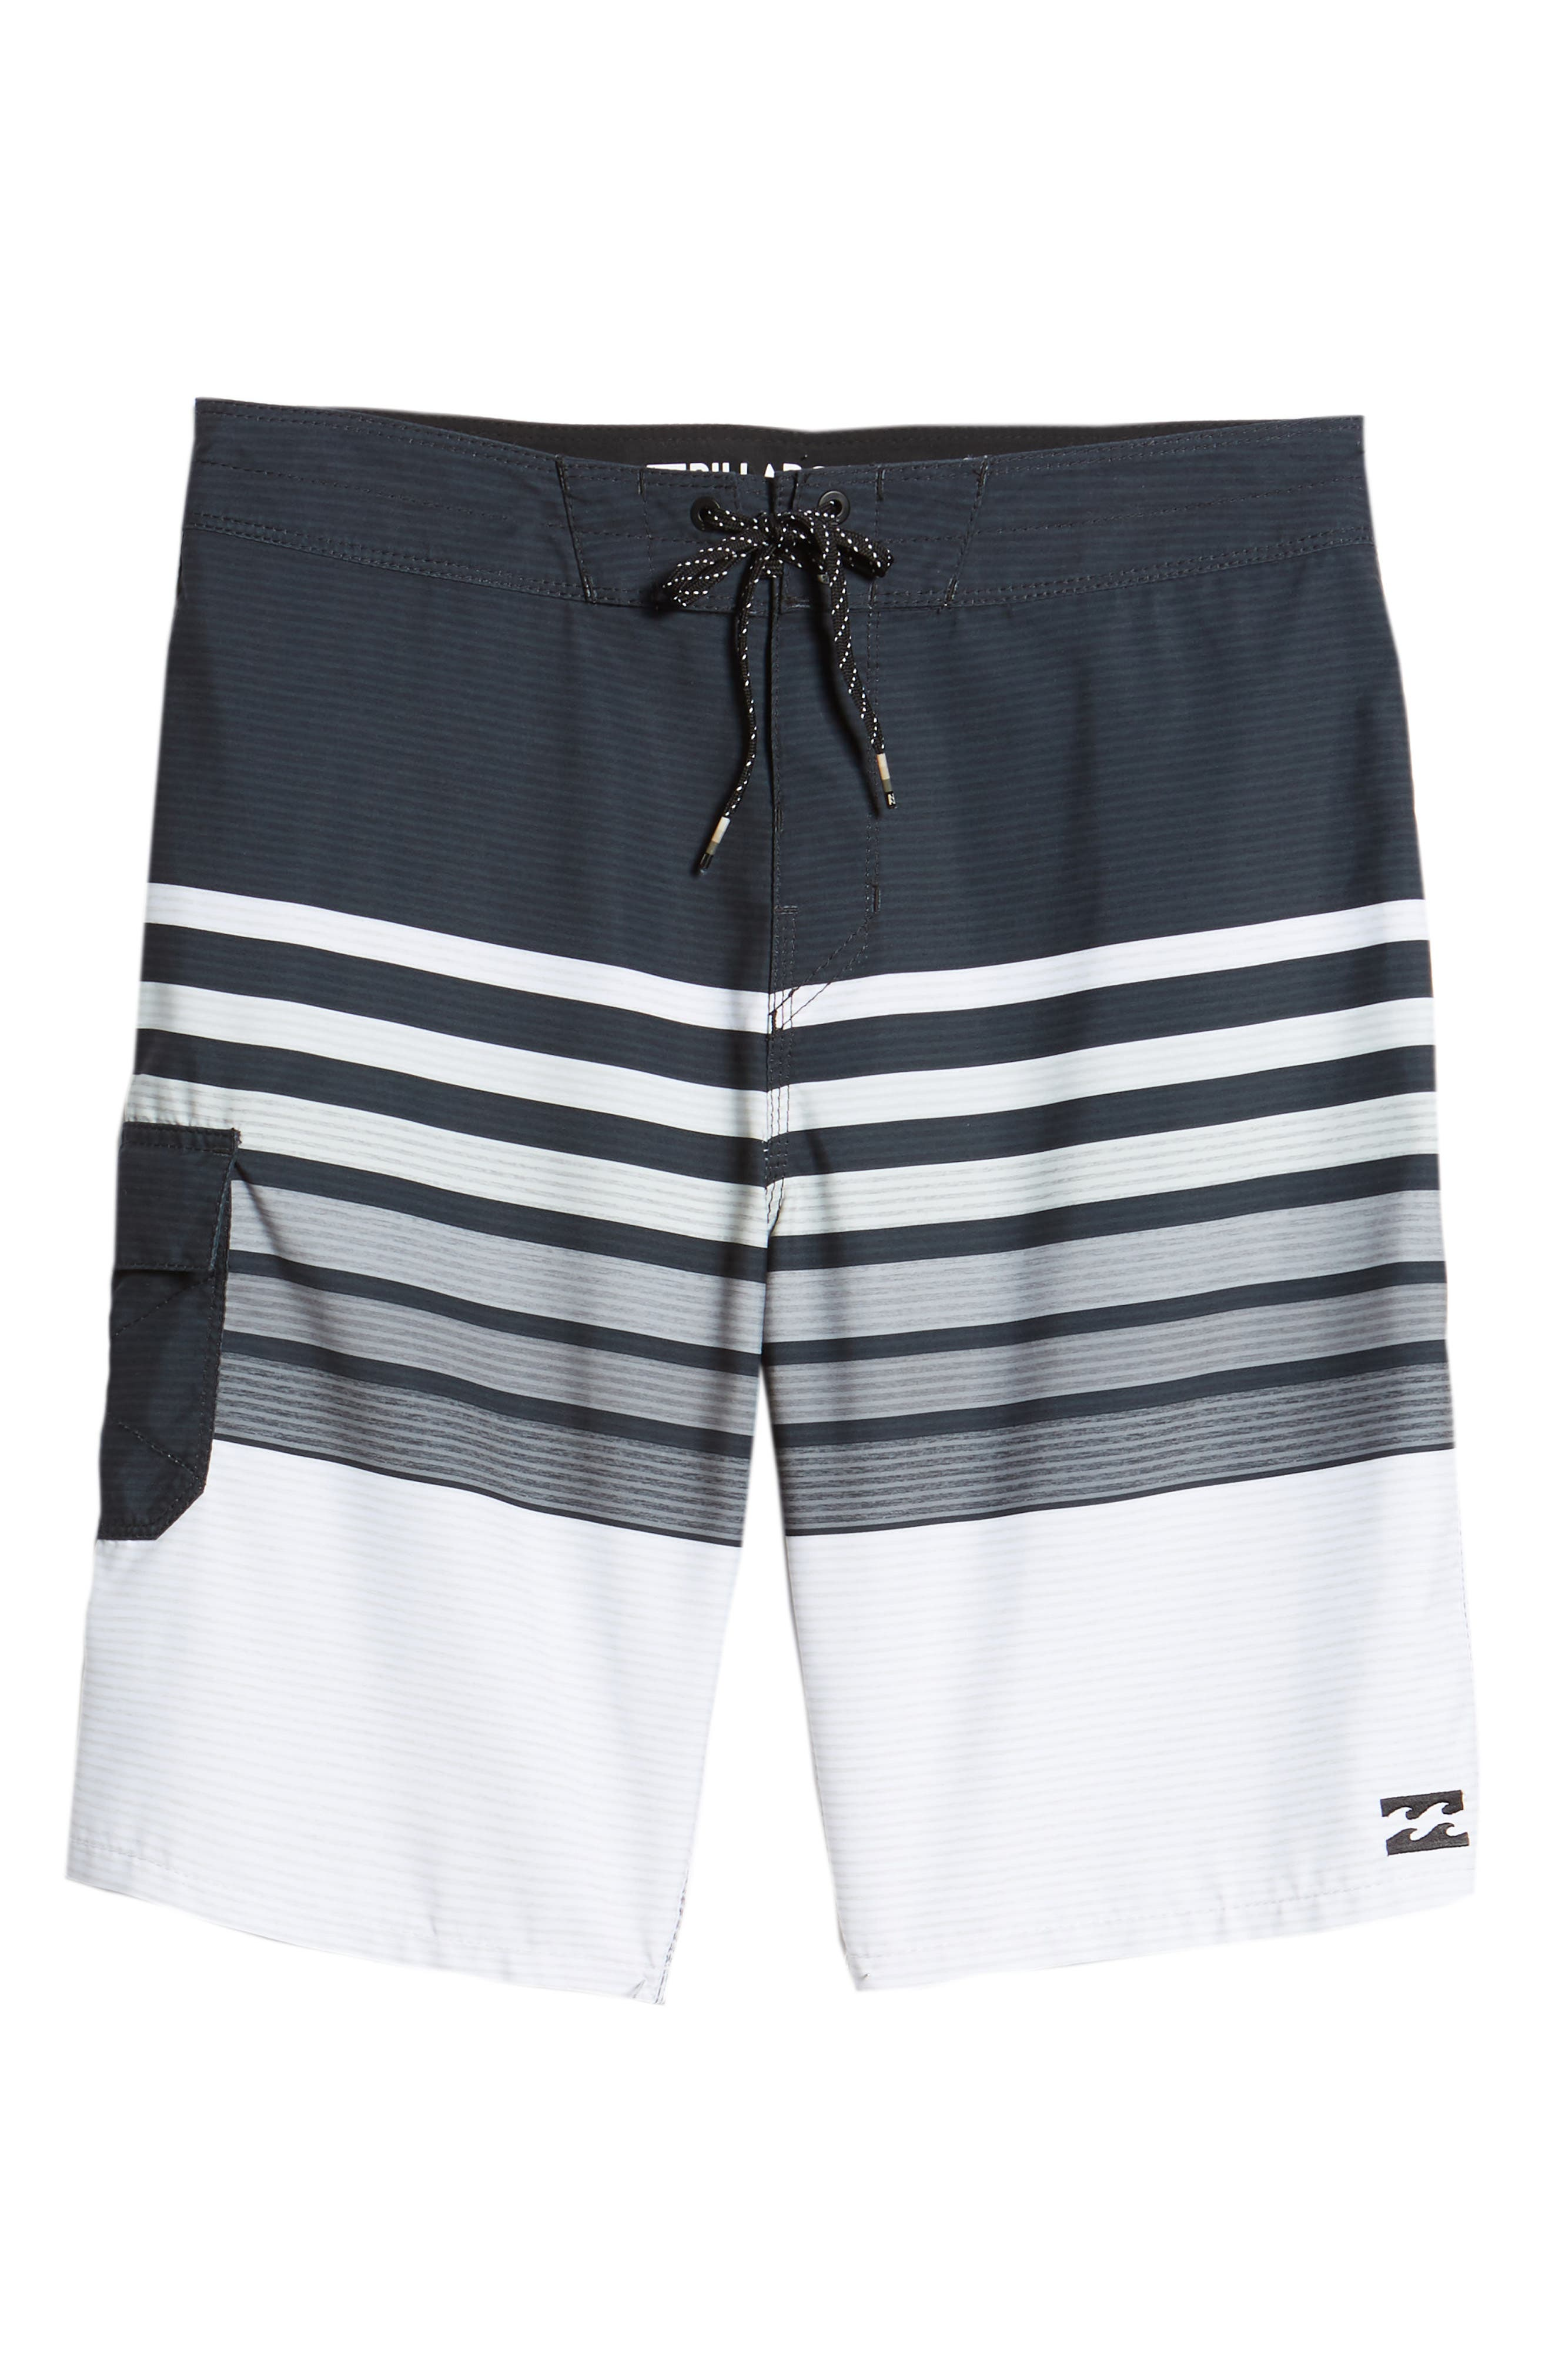 All Day OG Stripe Board Shorts,                             Alternate thumbnail 6, color,                             001